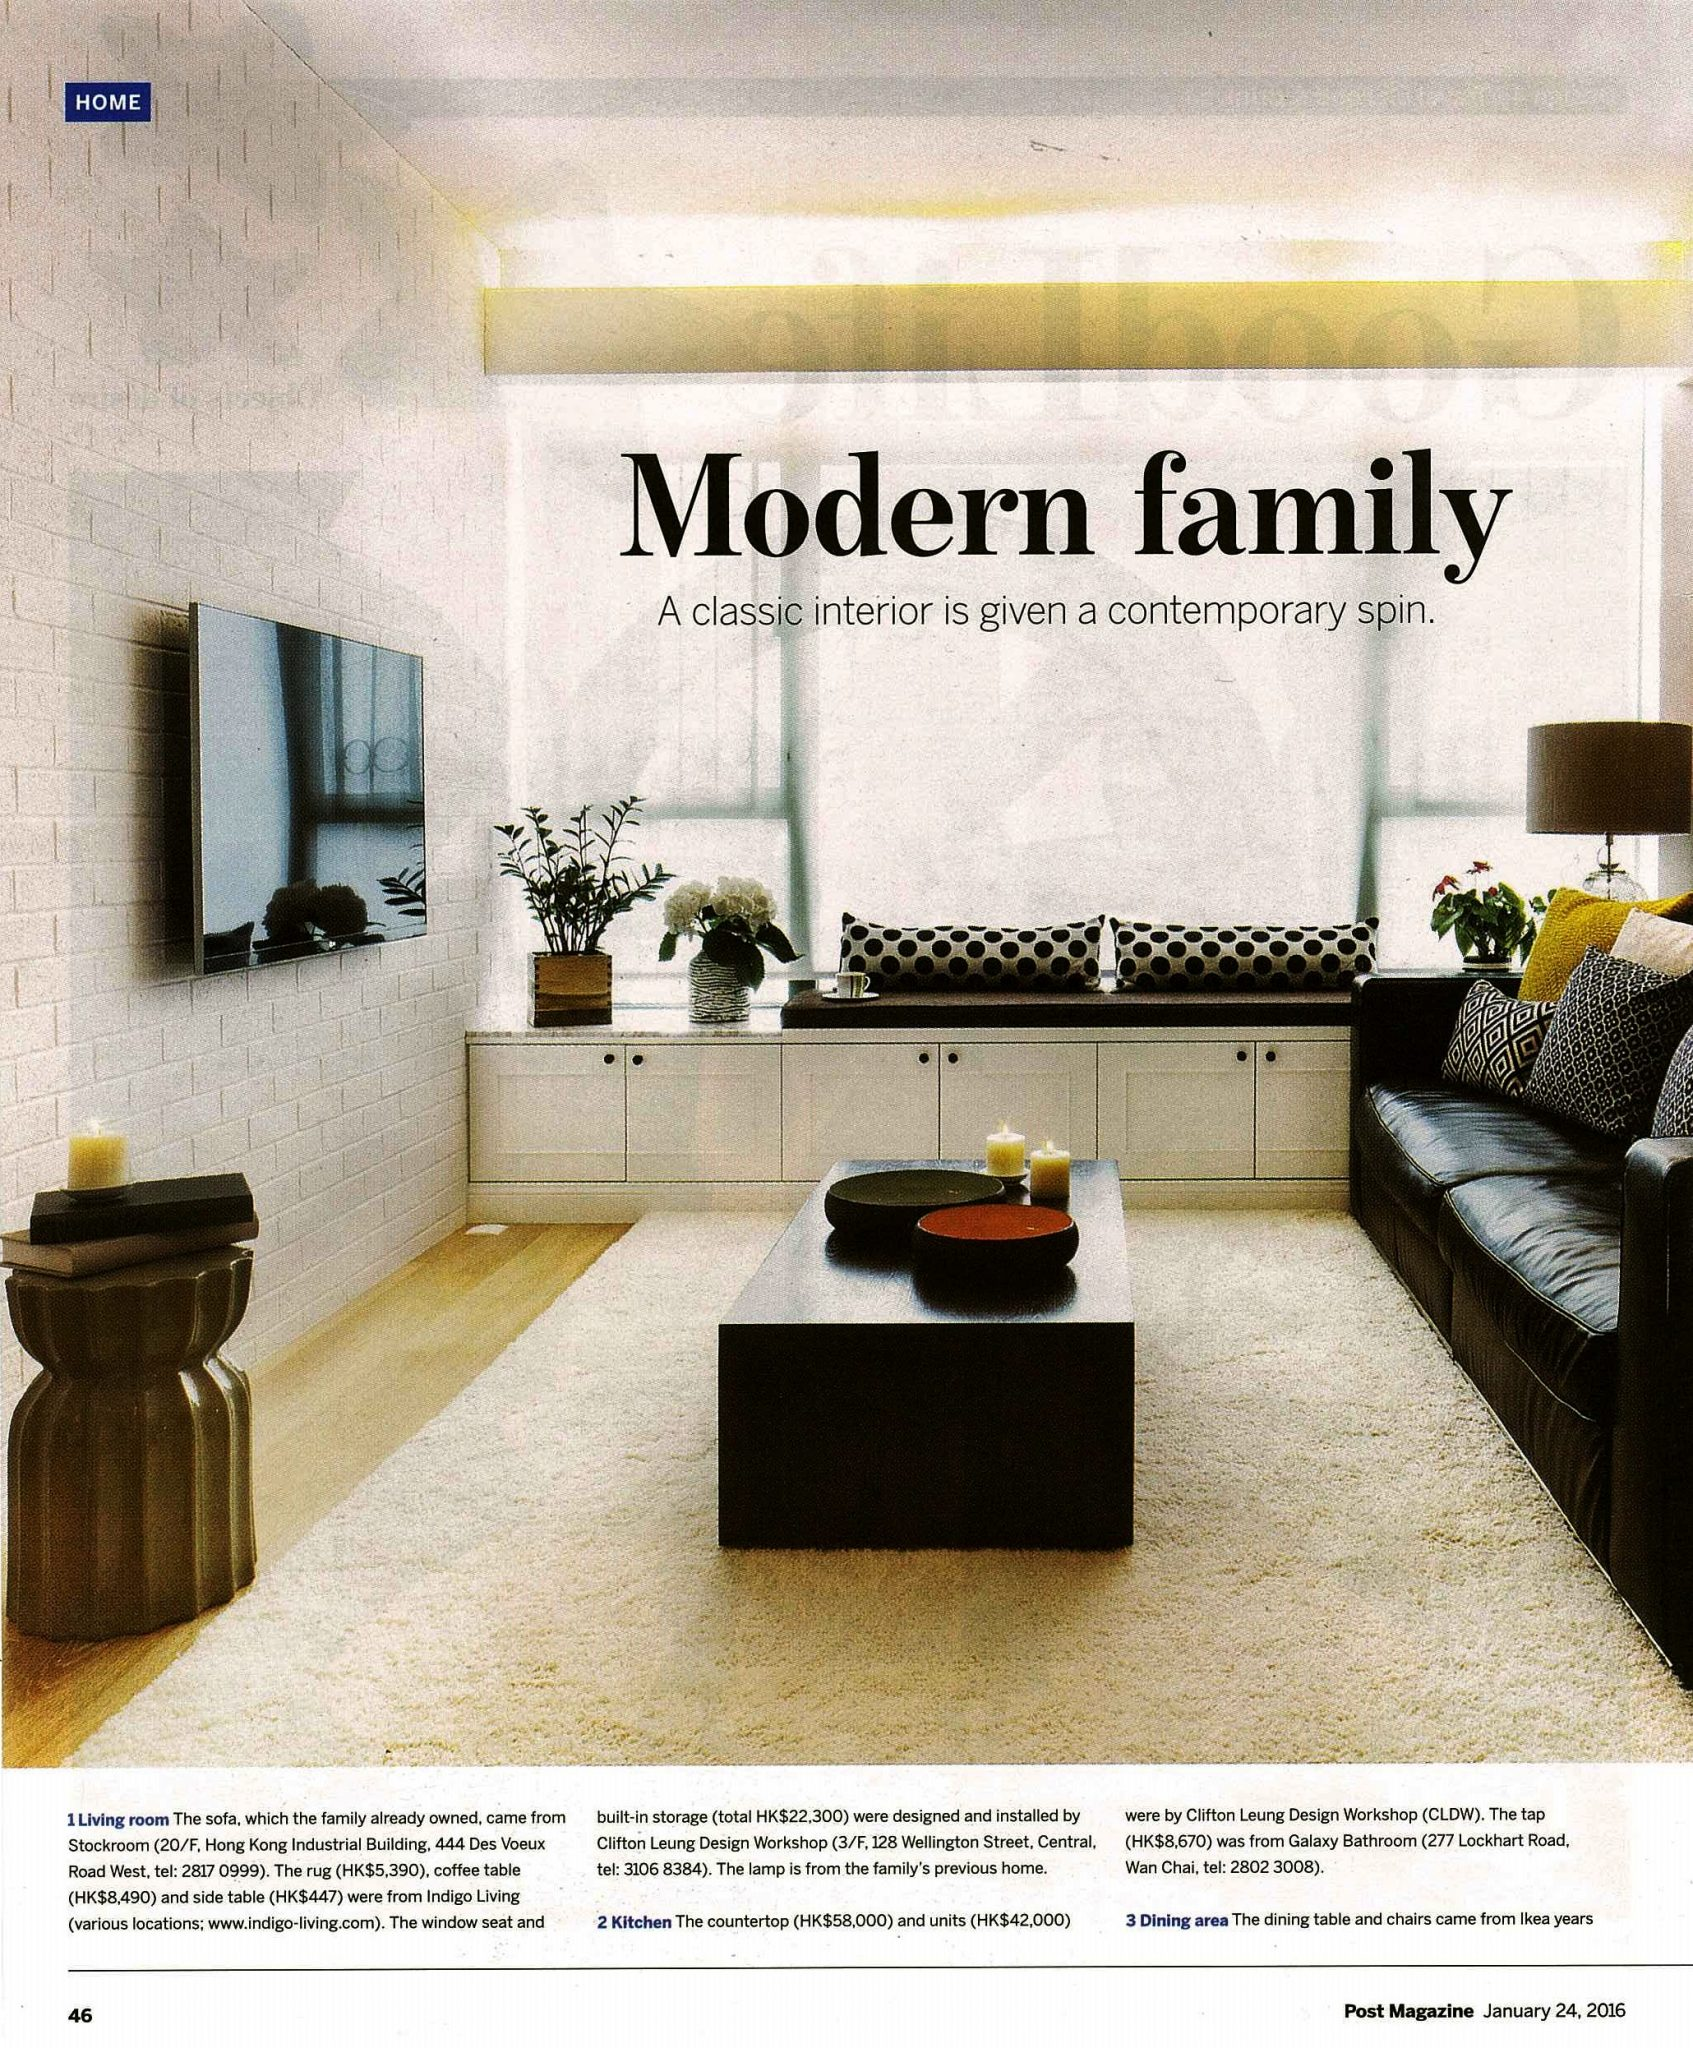 Modern Family | SCMP Post Magazine | Jan 2016